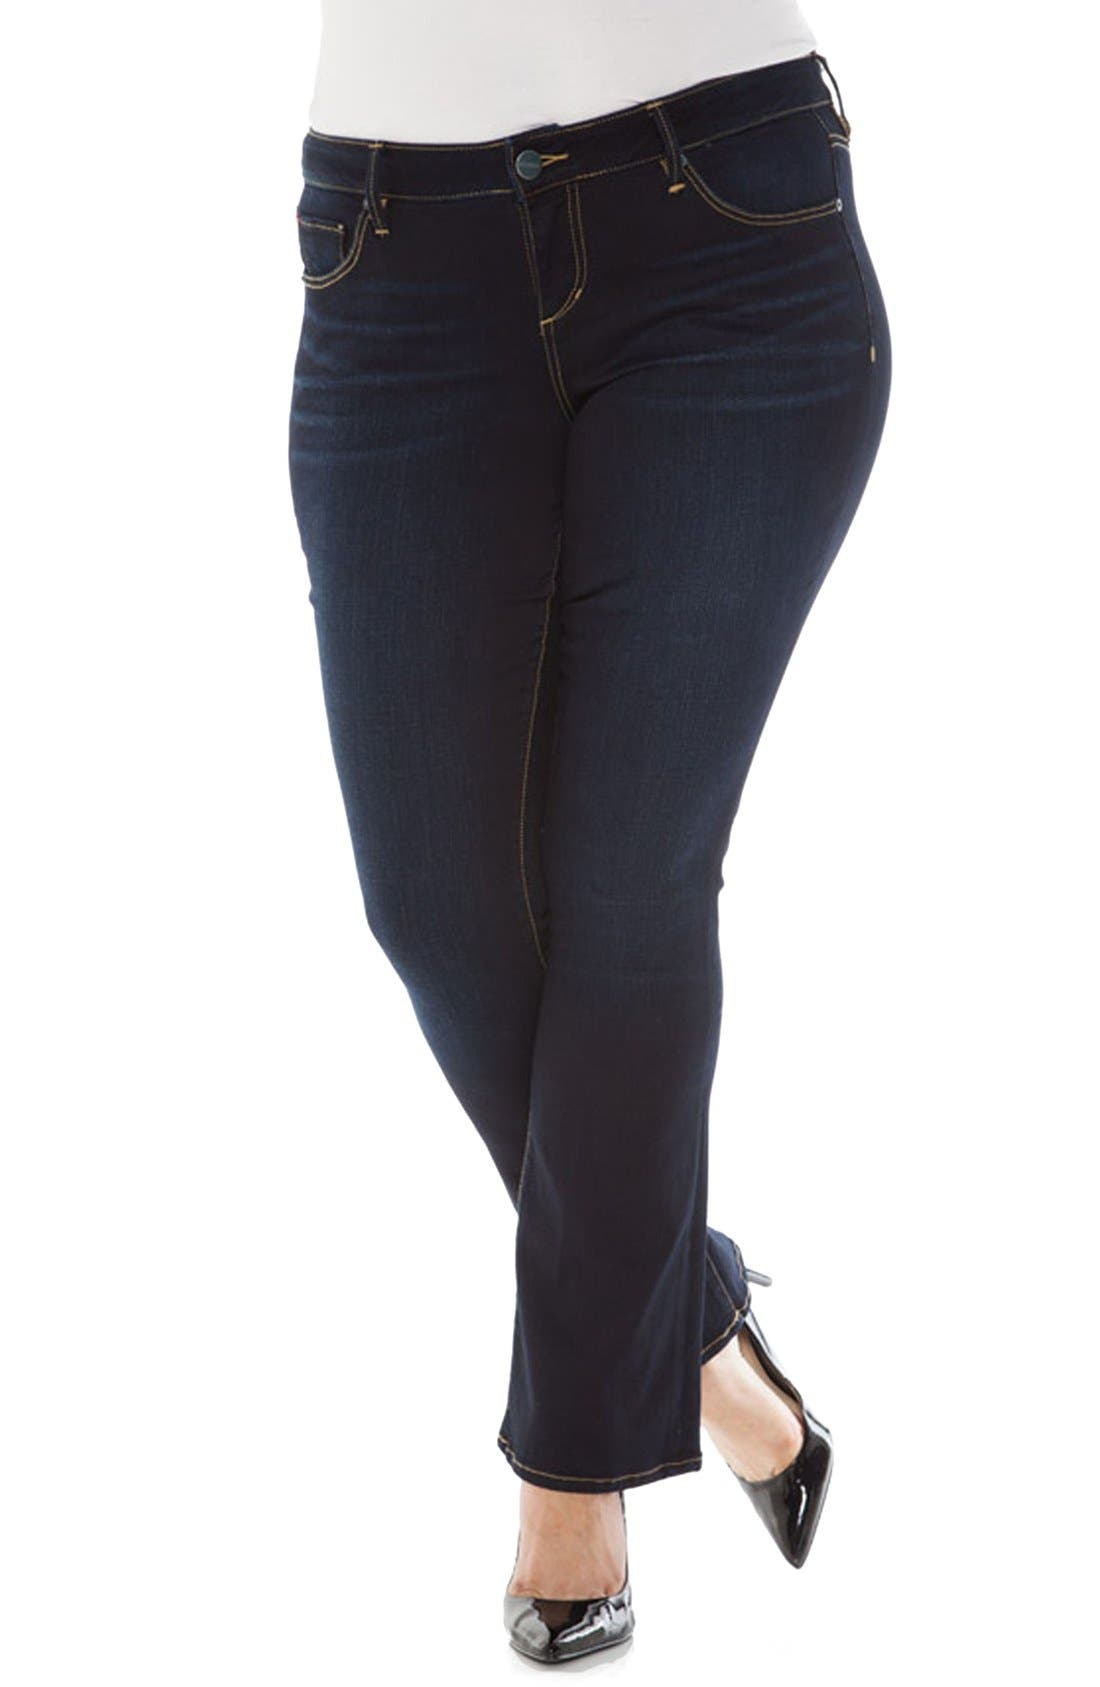 Low rise boot cut plus size jeans